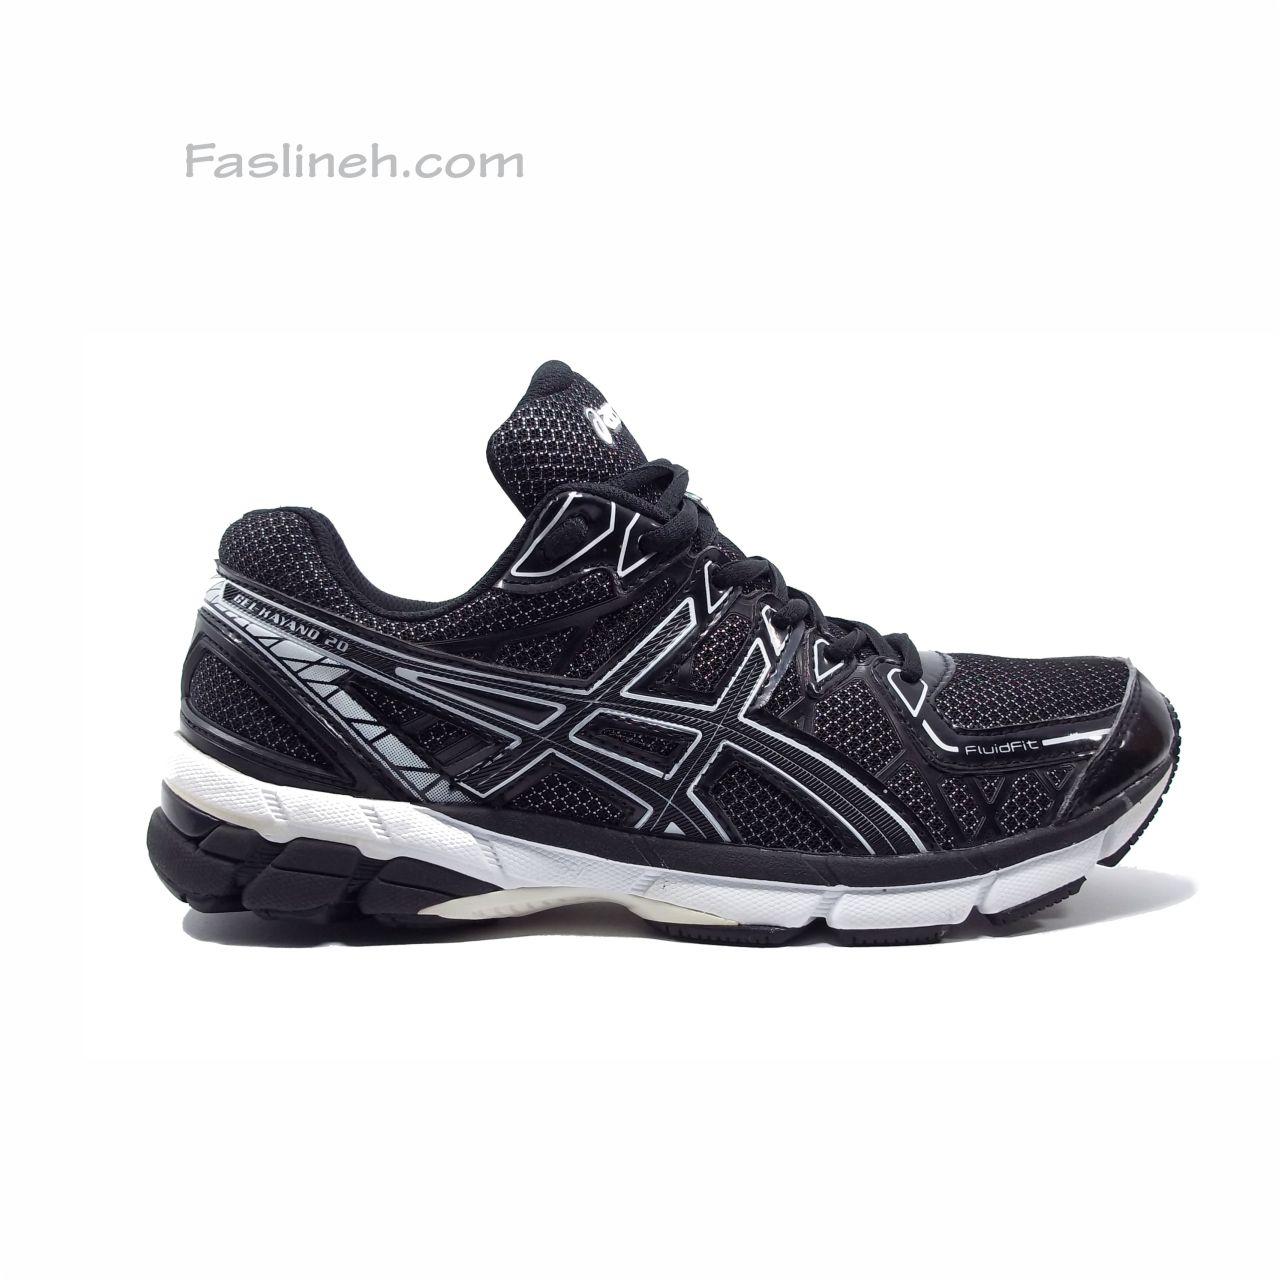 کتانی اسیکس gel kayano20 مشکی